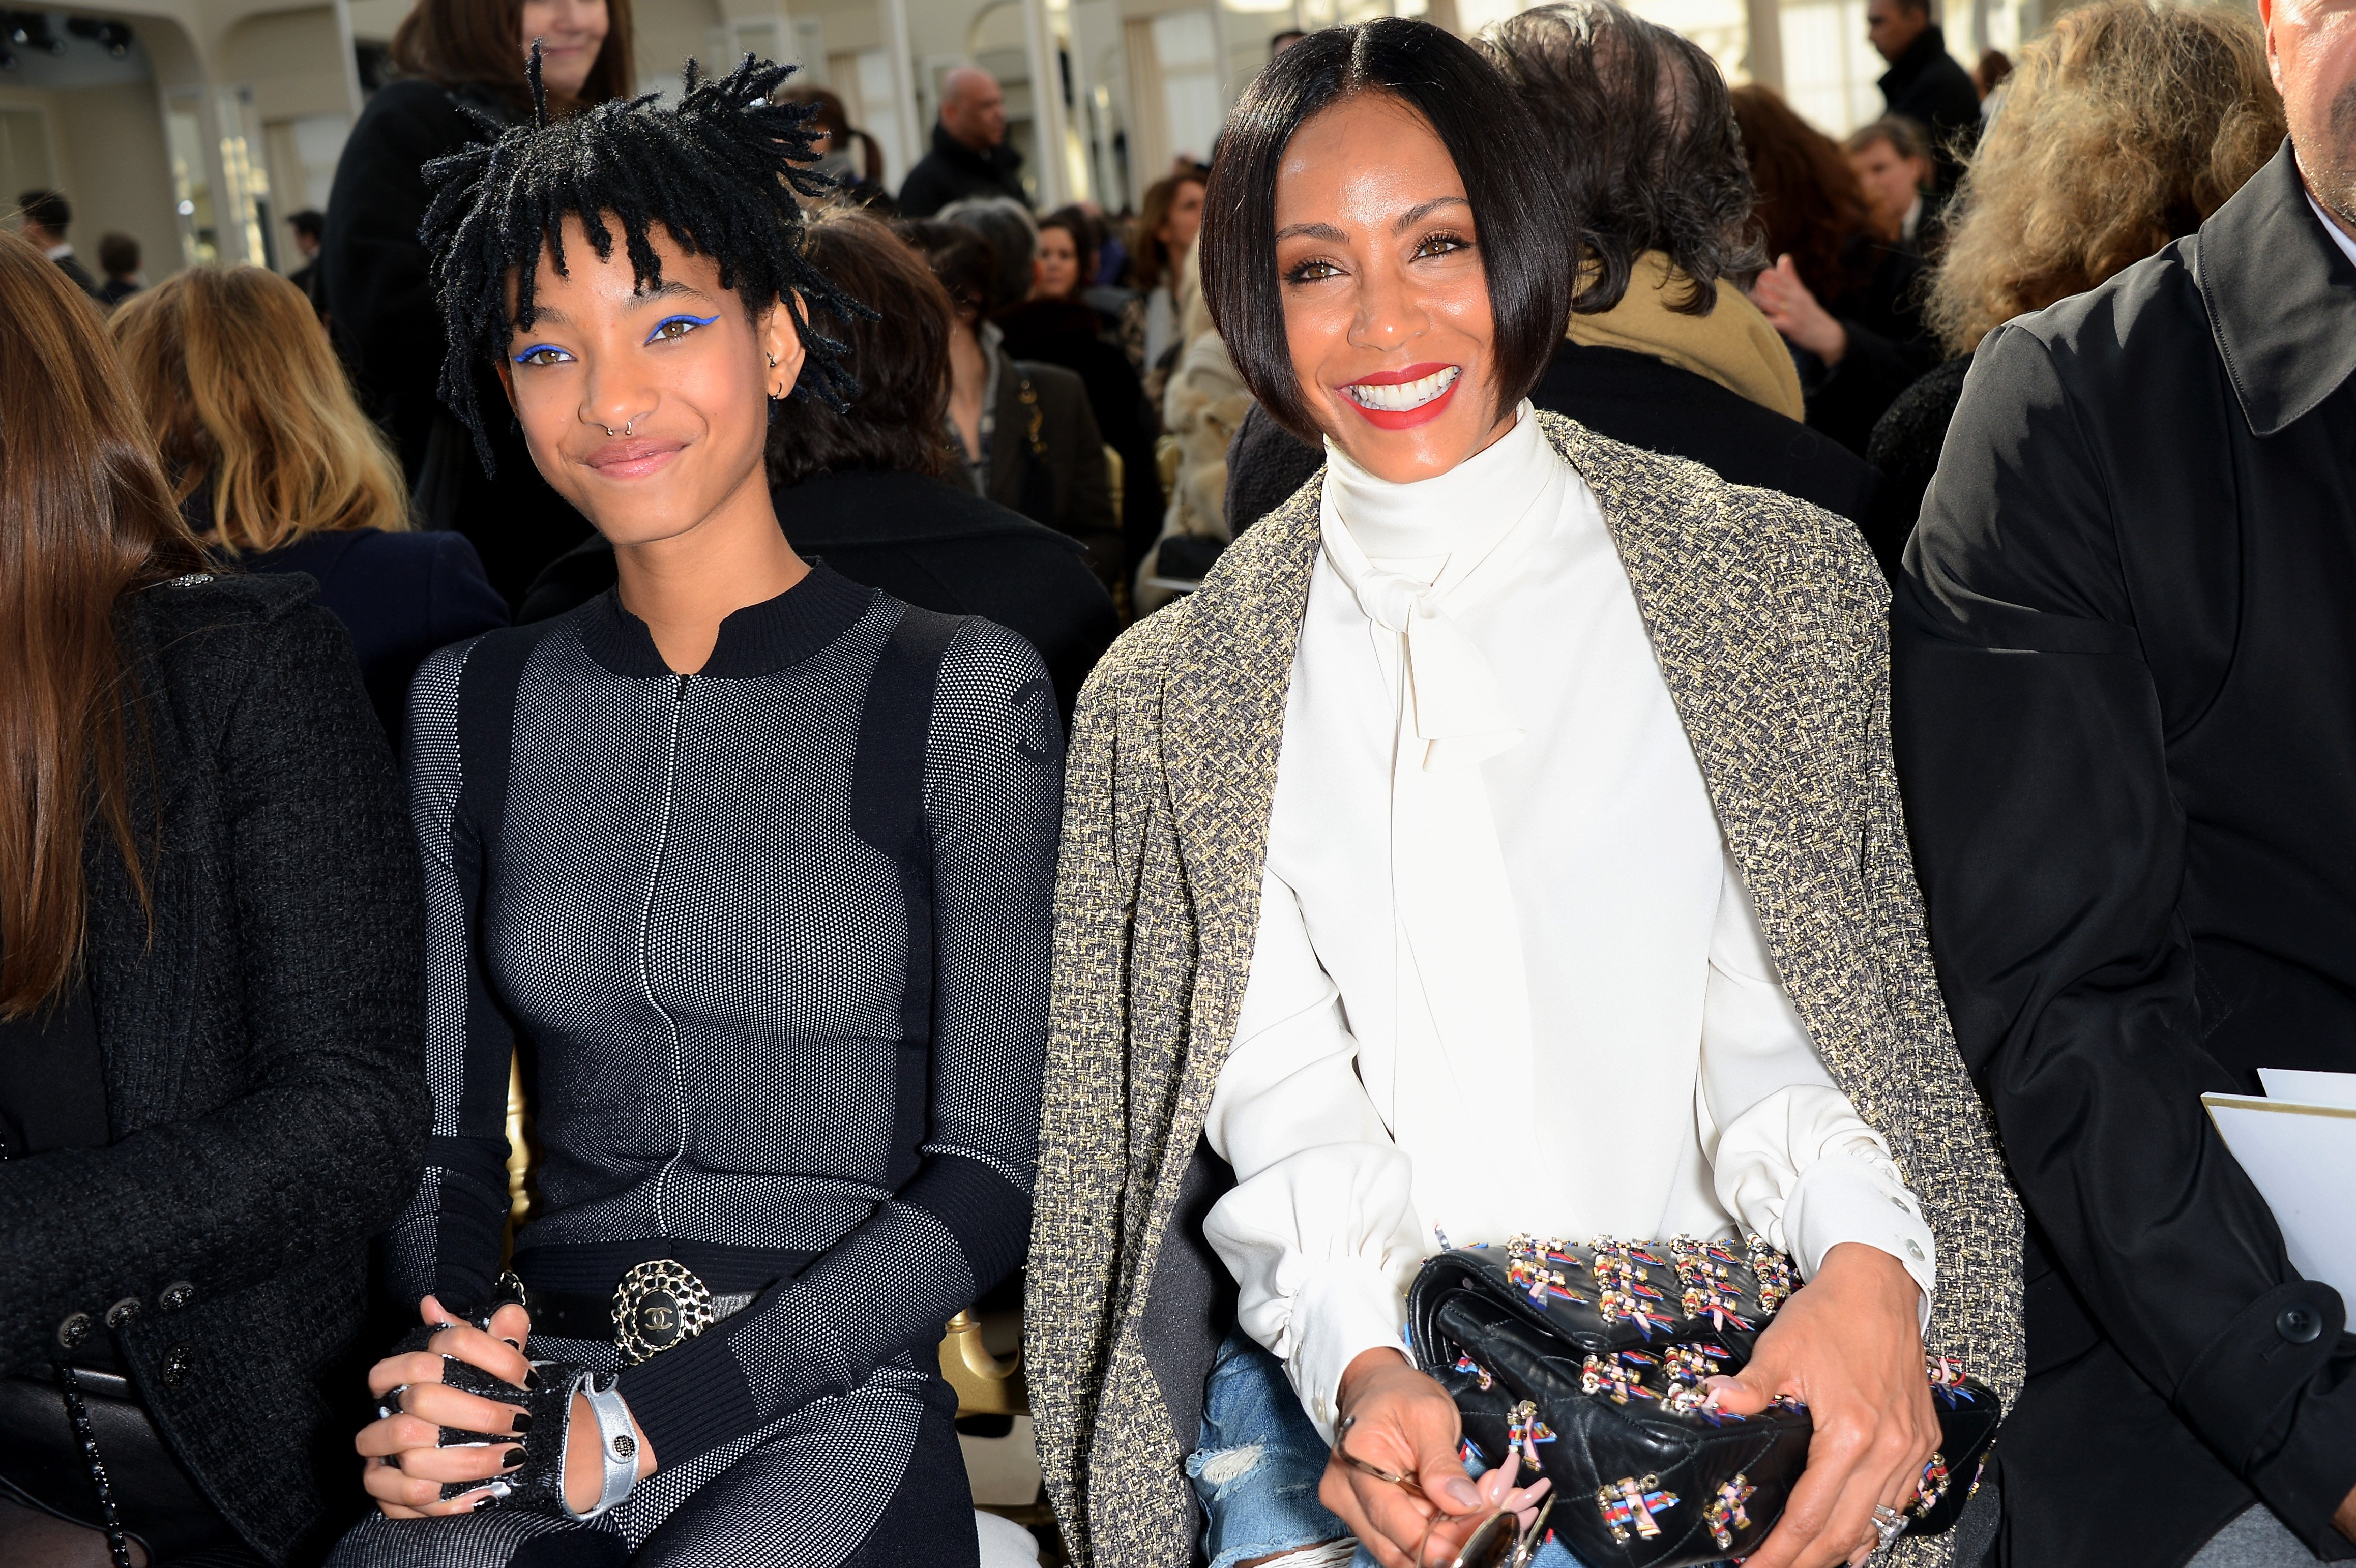 Jada Pinkett Smith and Willow Smith front row at the Chanel show at Paris Fashion Week in 2016   Photo: Getty Images